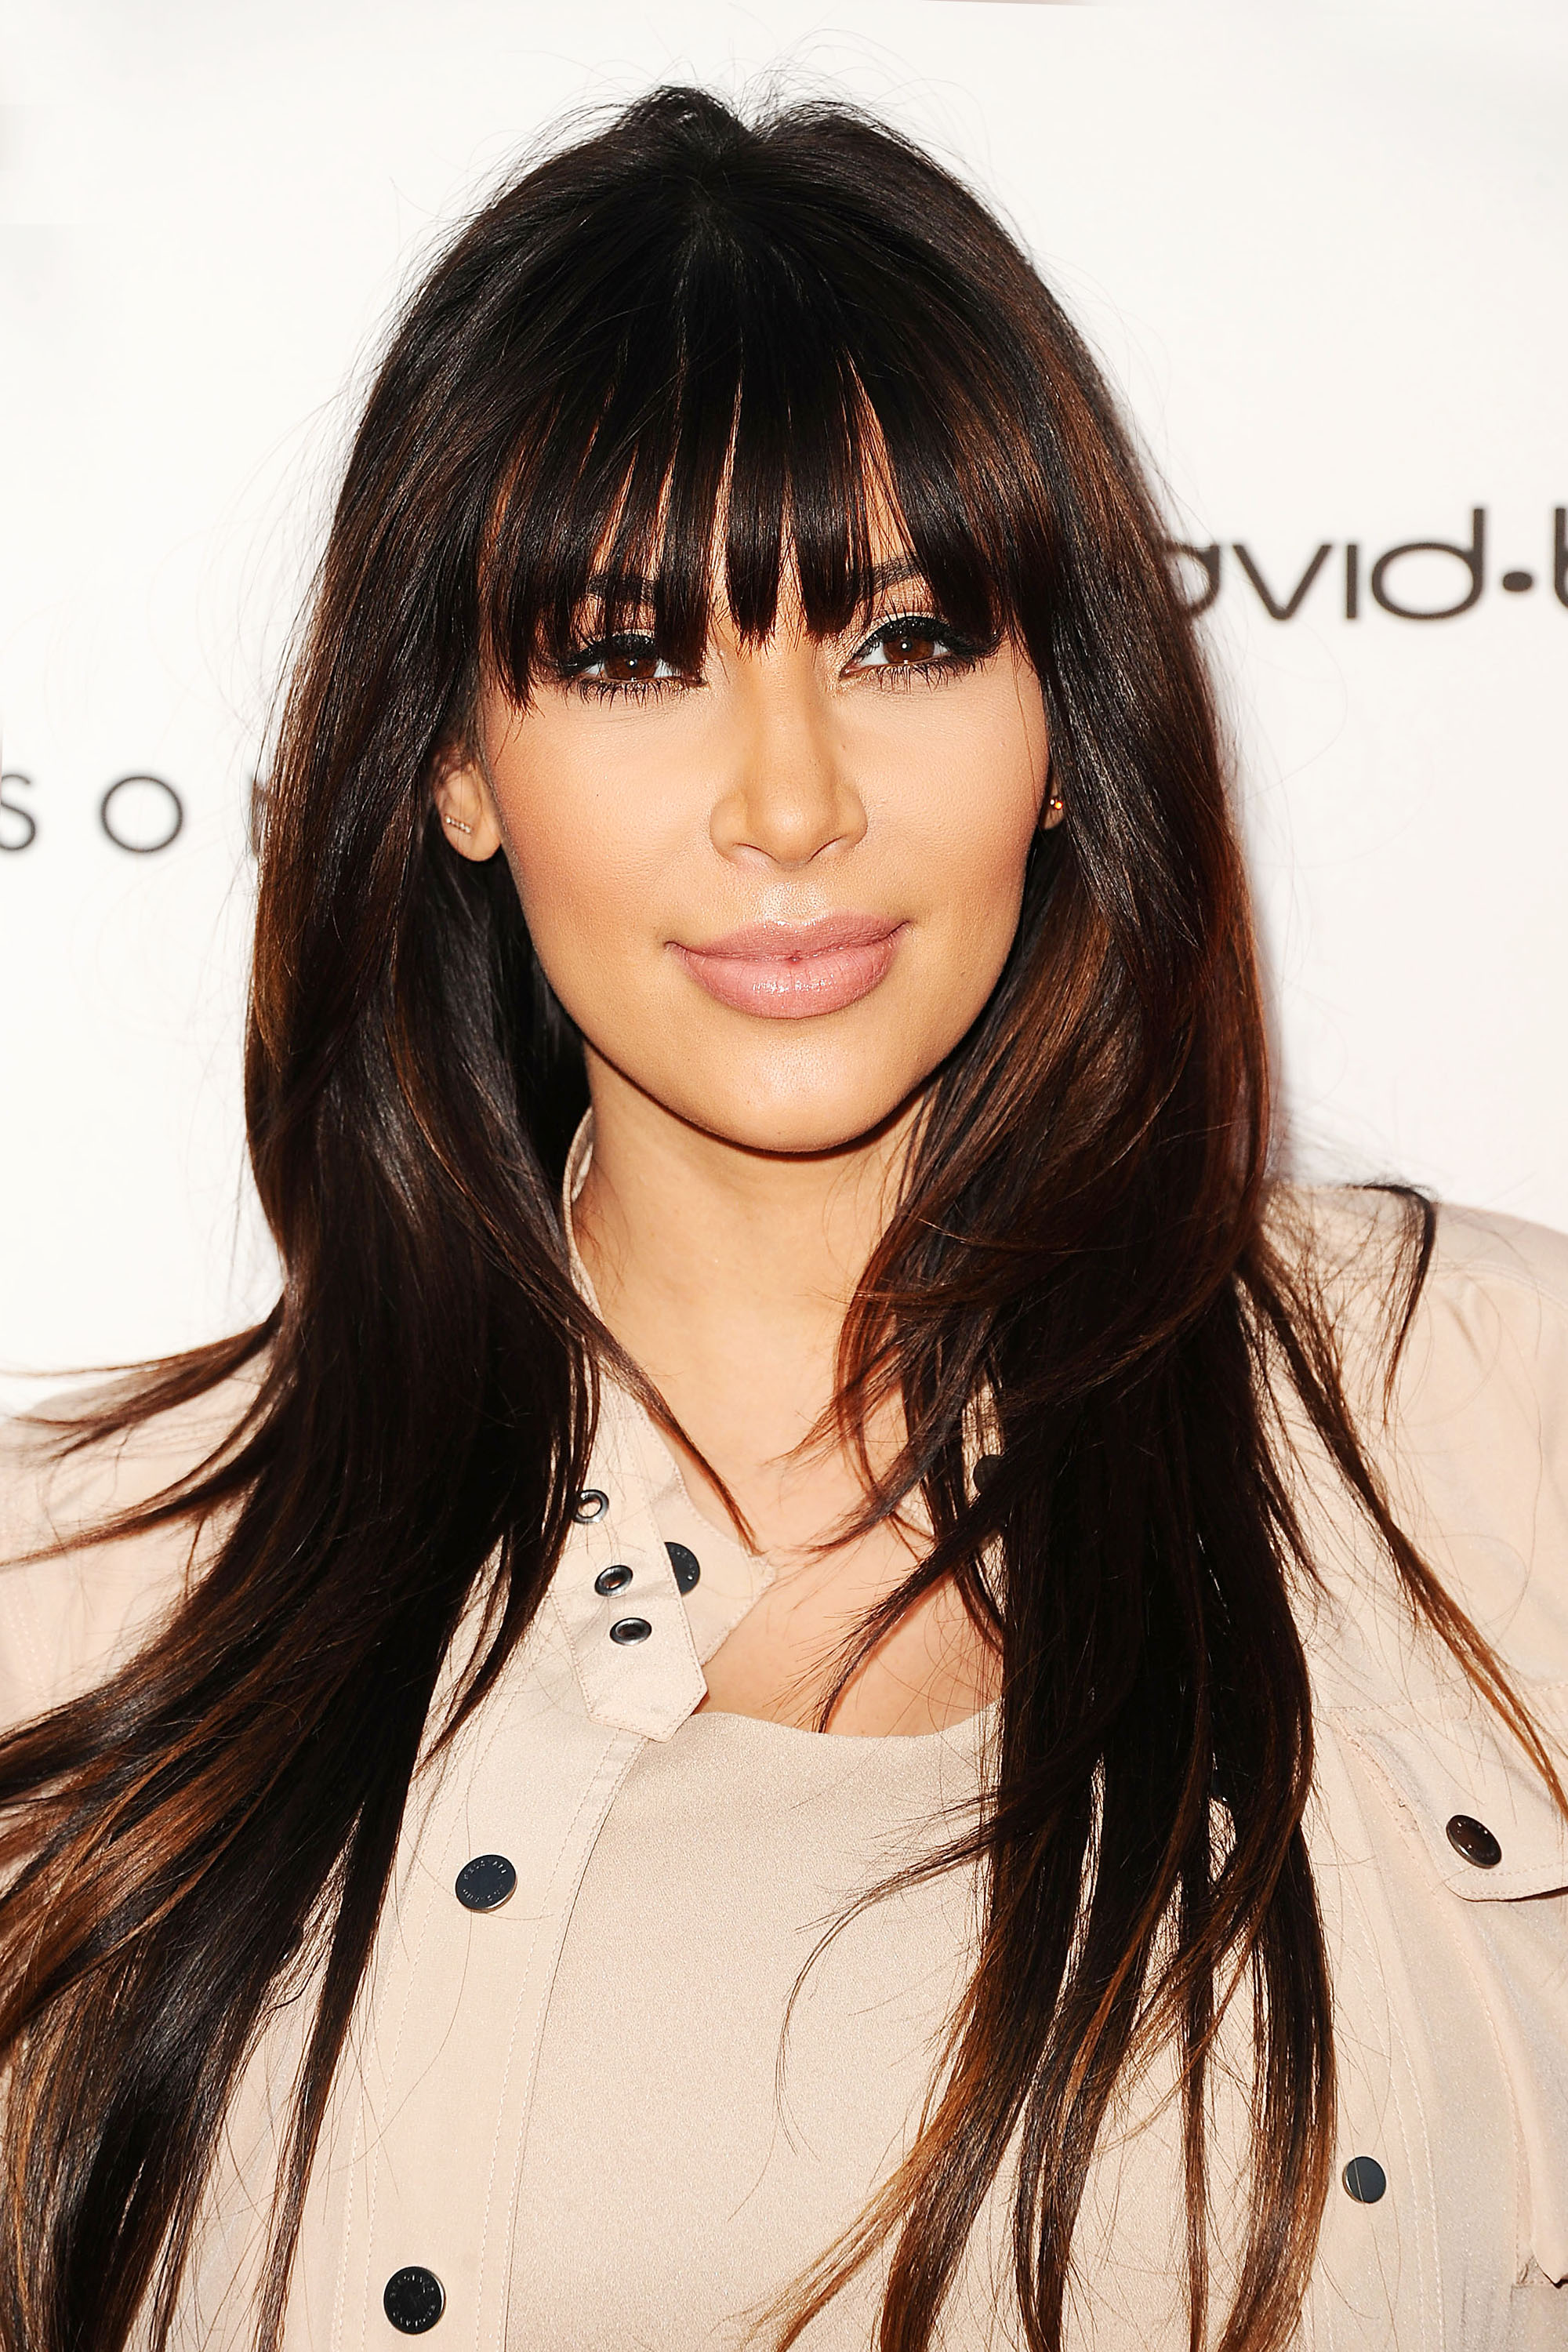 Top 25 Hairstyles By Kim Kardashian HairStyles For Woman